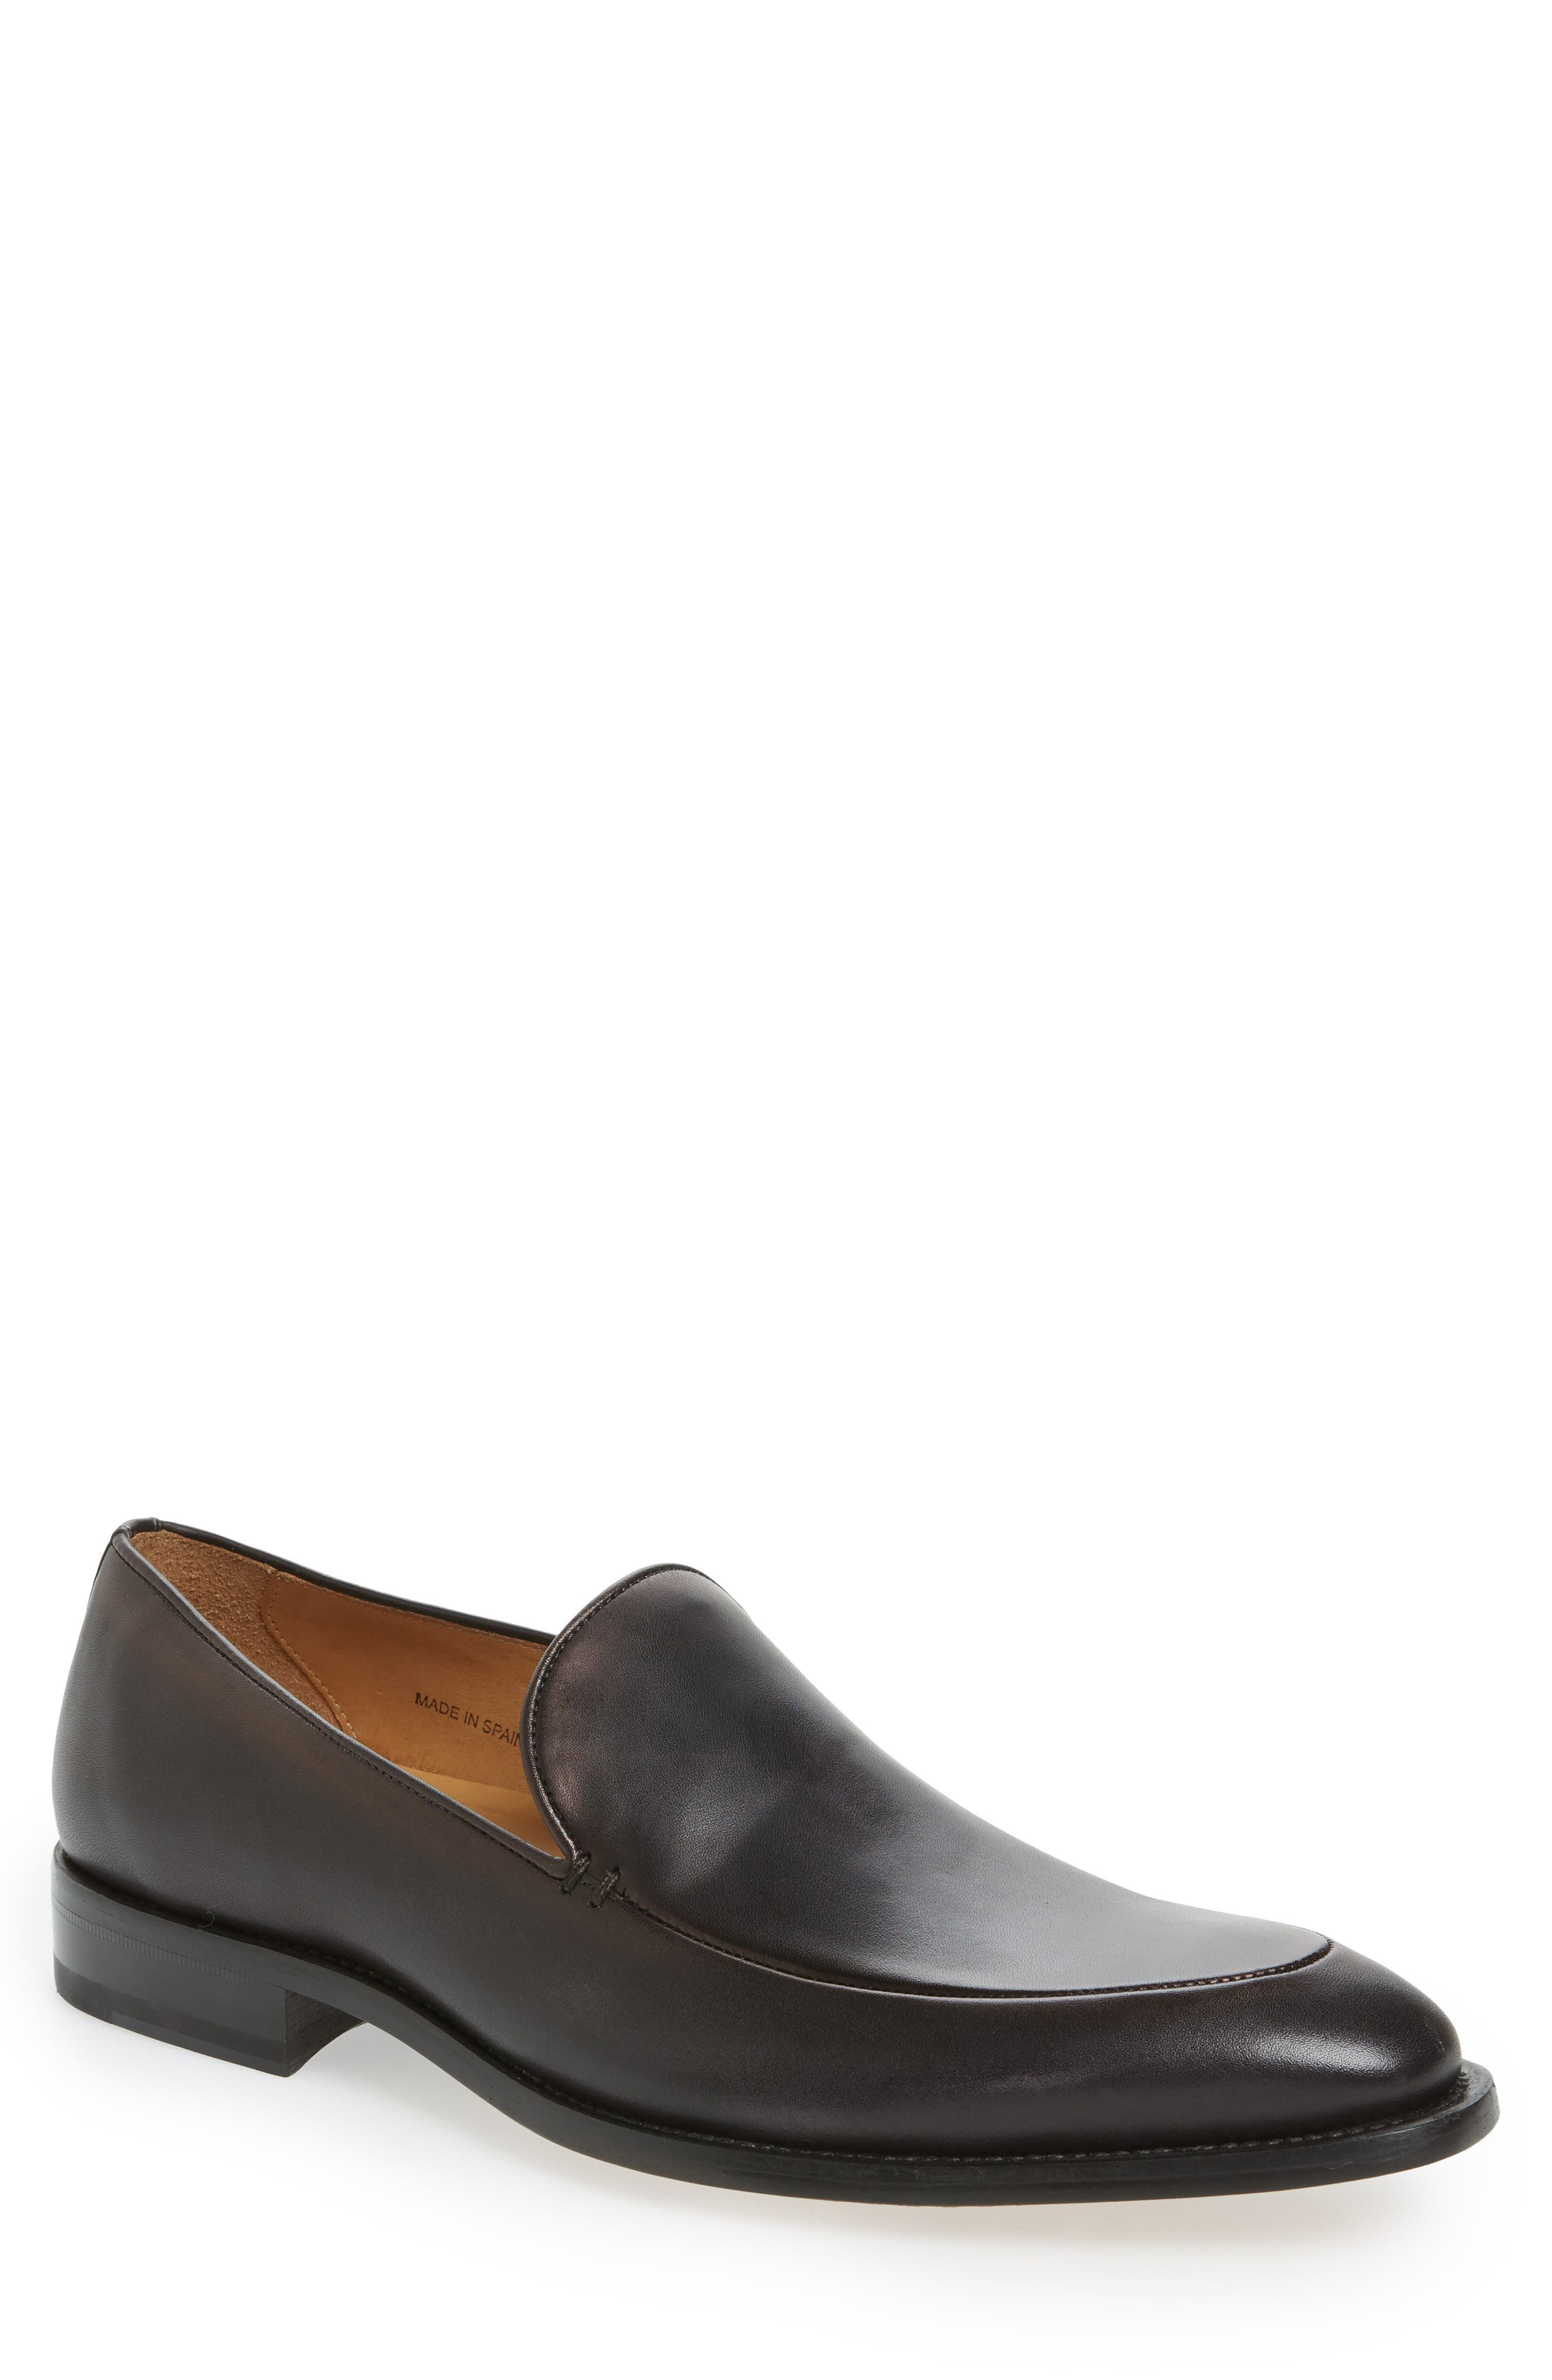 Strauss Venetian Loafer,                         Main,                         color, 008